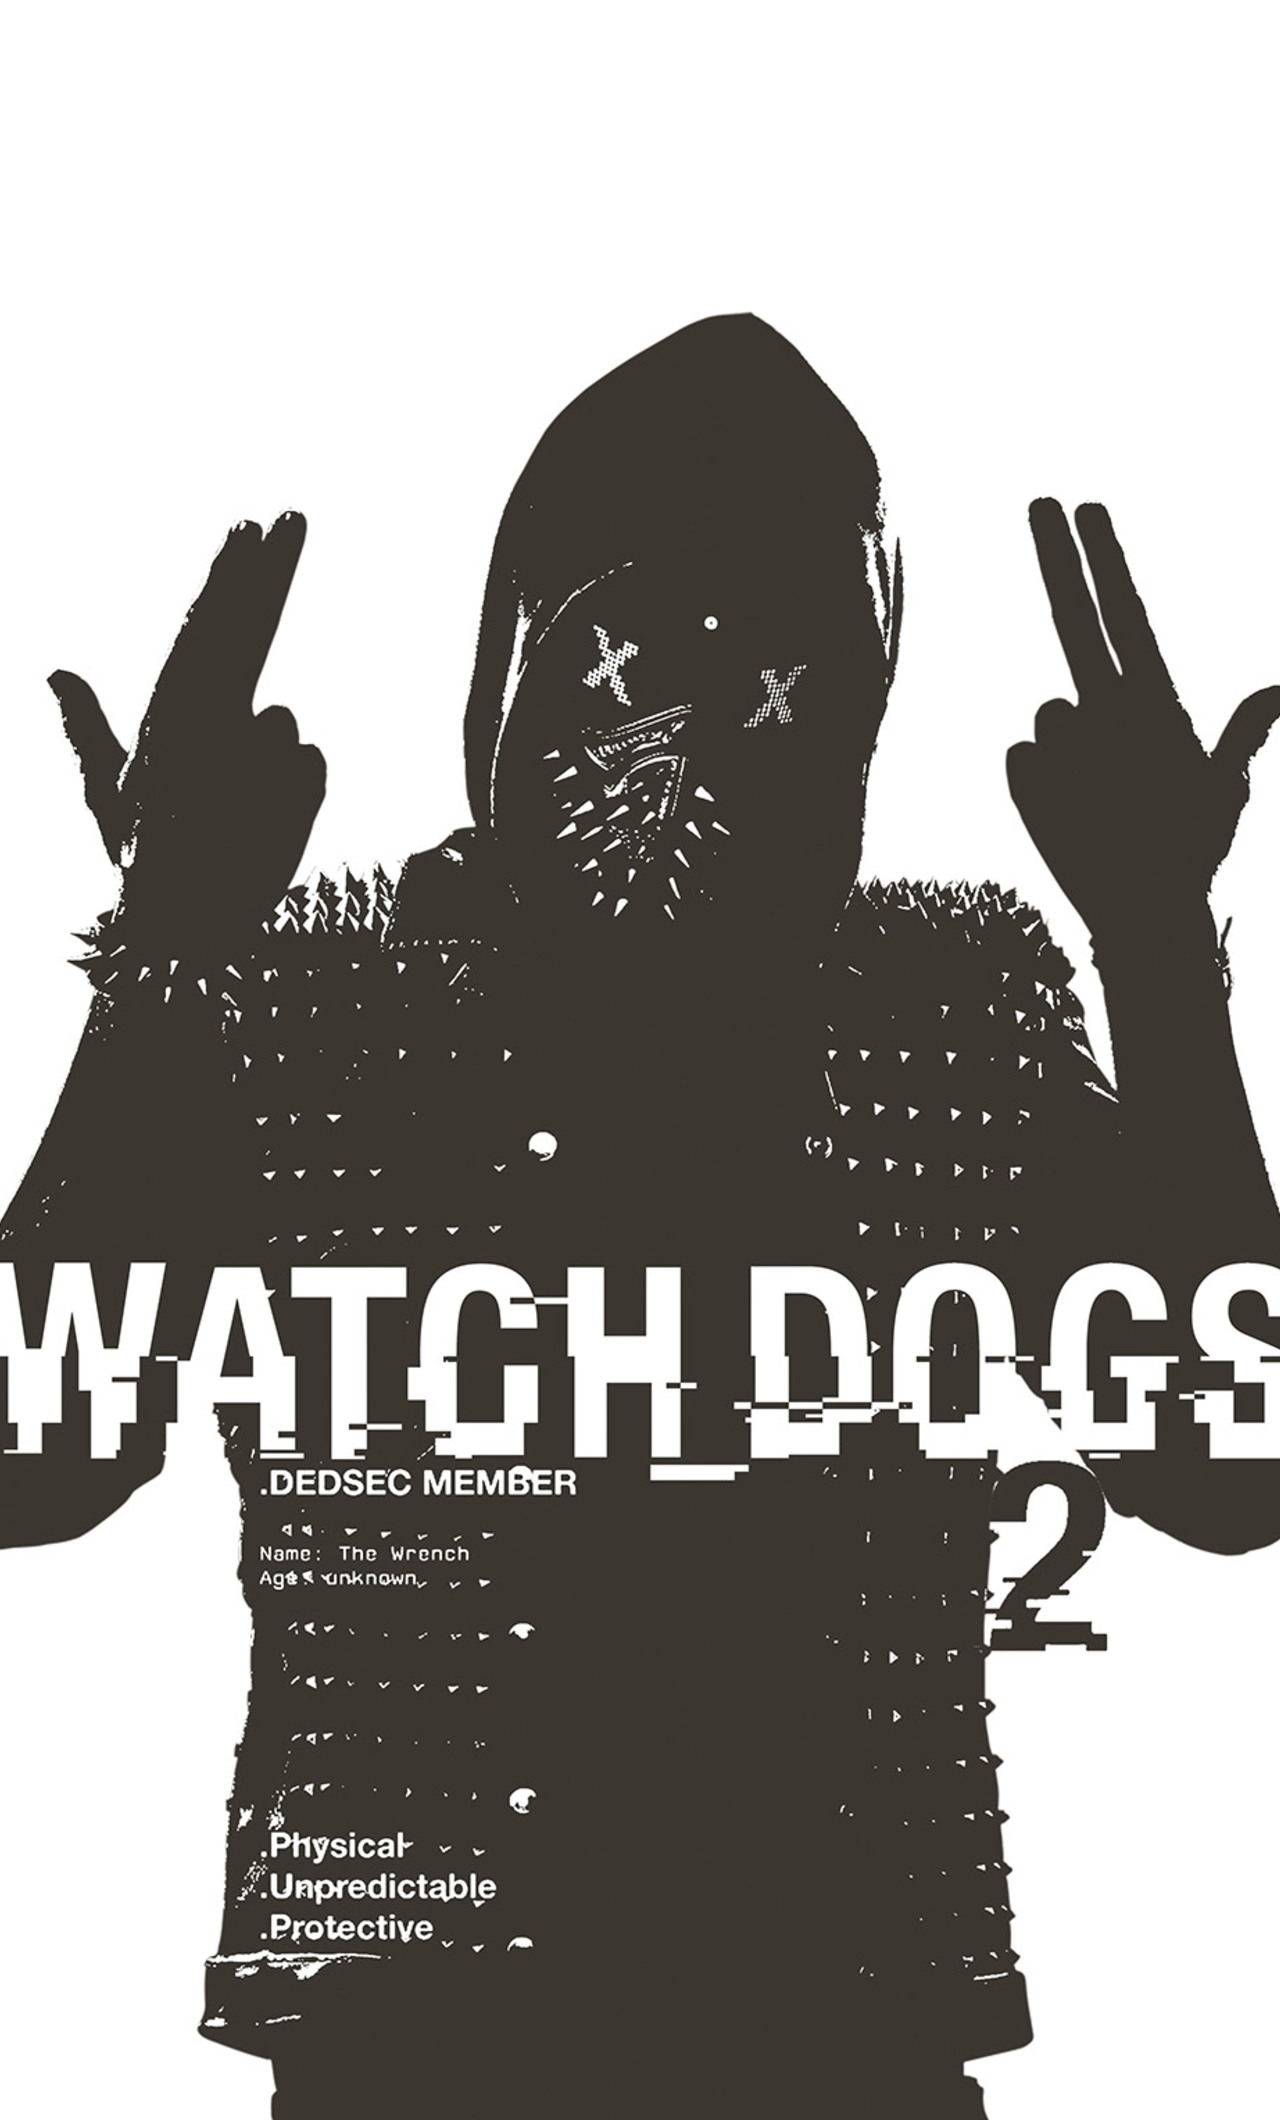 Wrench Watch Dogs 2 Wallpaper Wrench Watch Dogs 2 Fan - Watch Dogs 2 Wallpaper Iphone Wrench , HD Wallpaper & Backgrounds